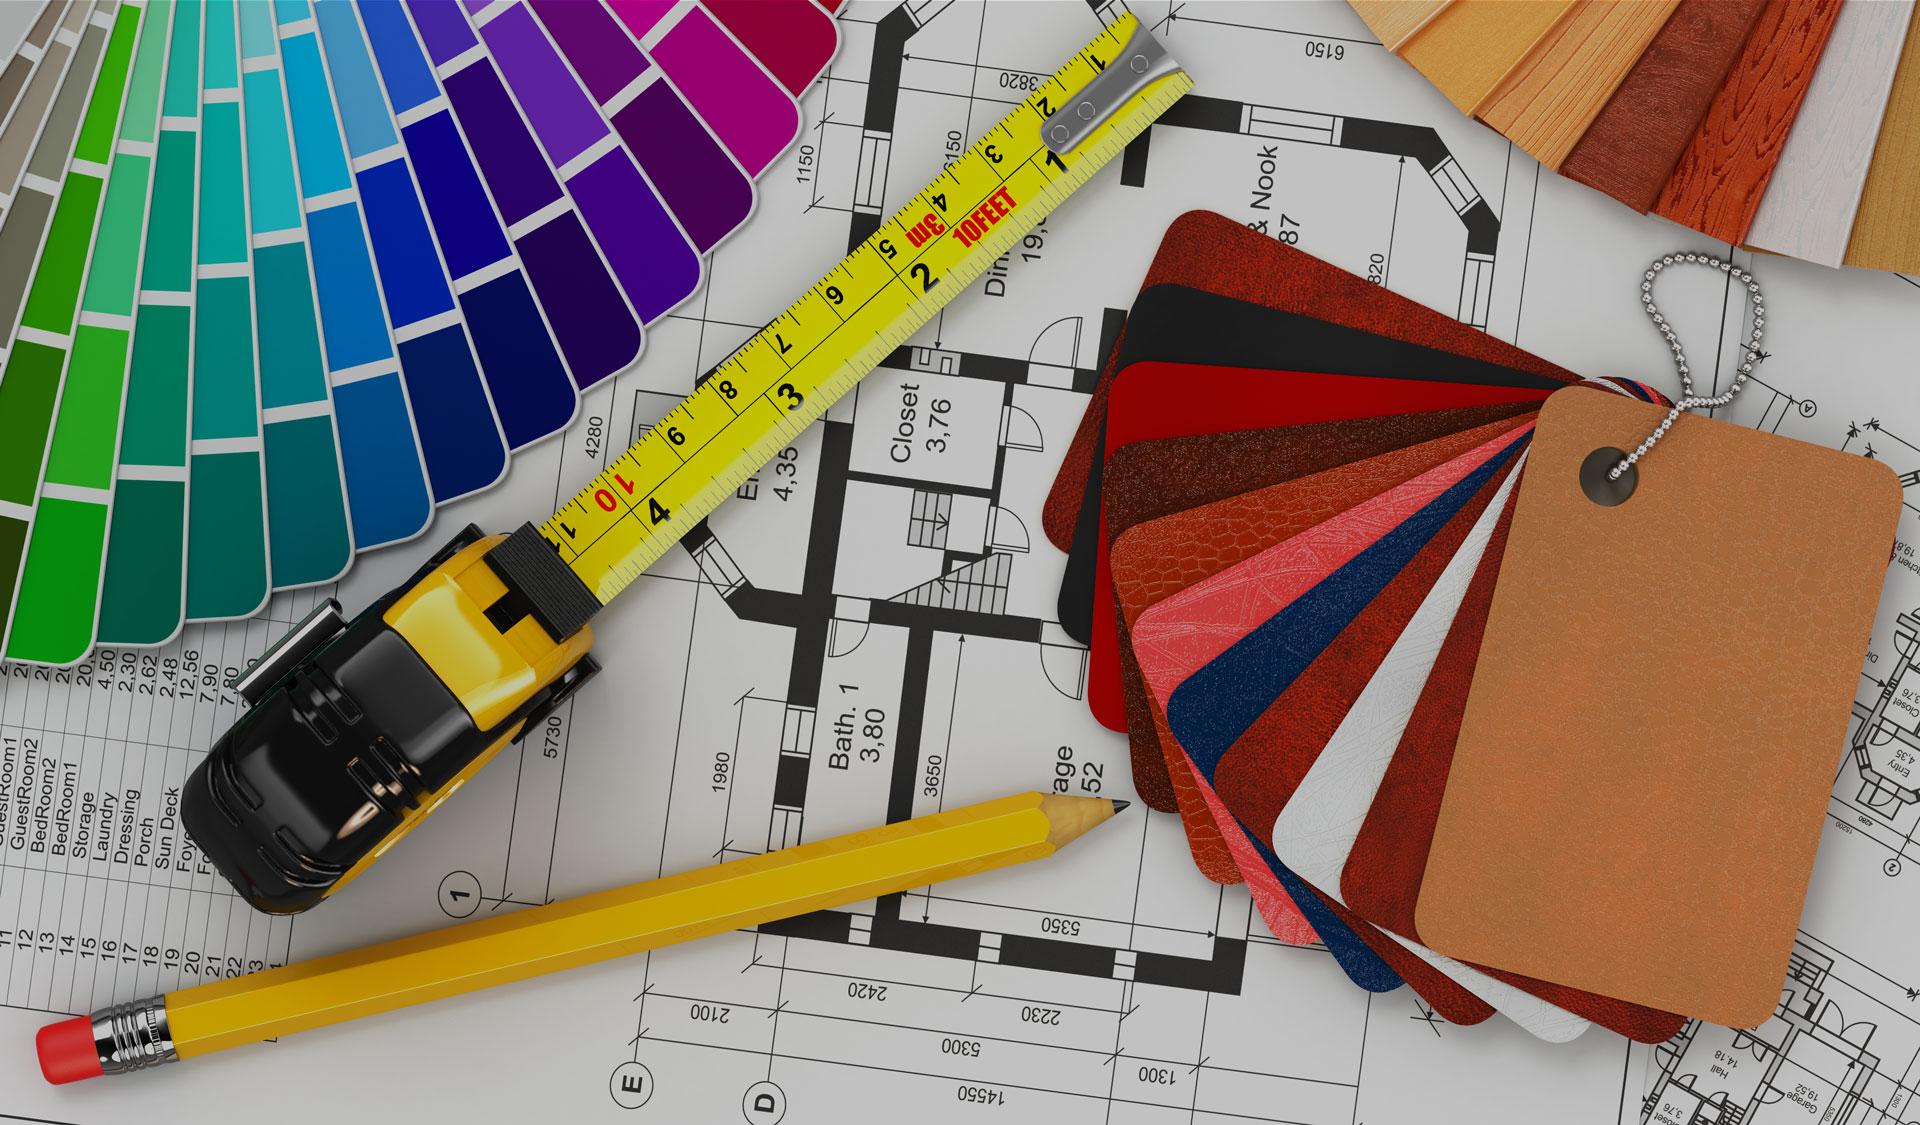 interior designer tools on a blueprint